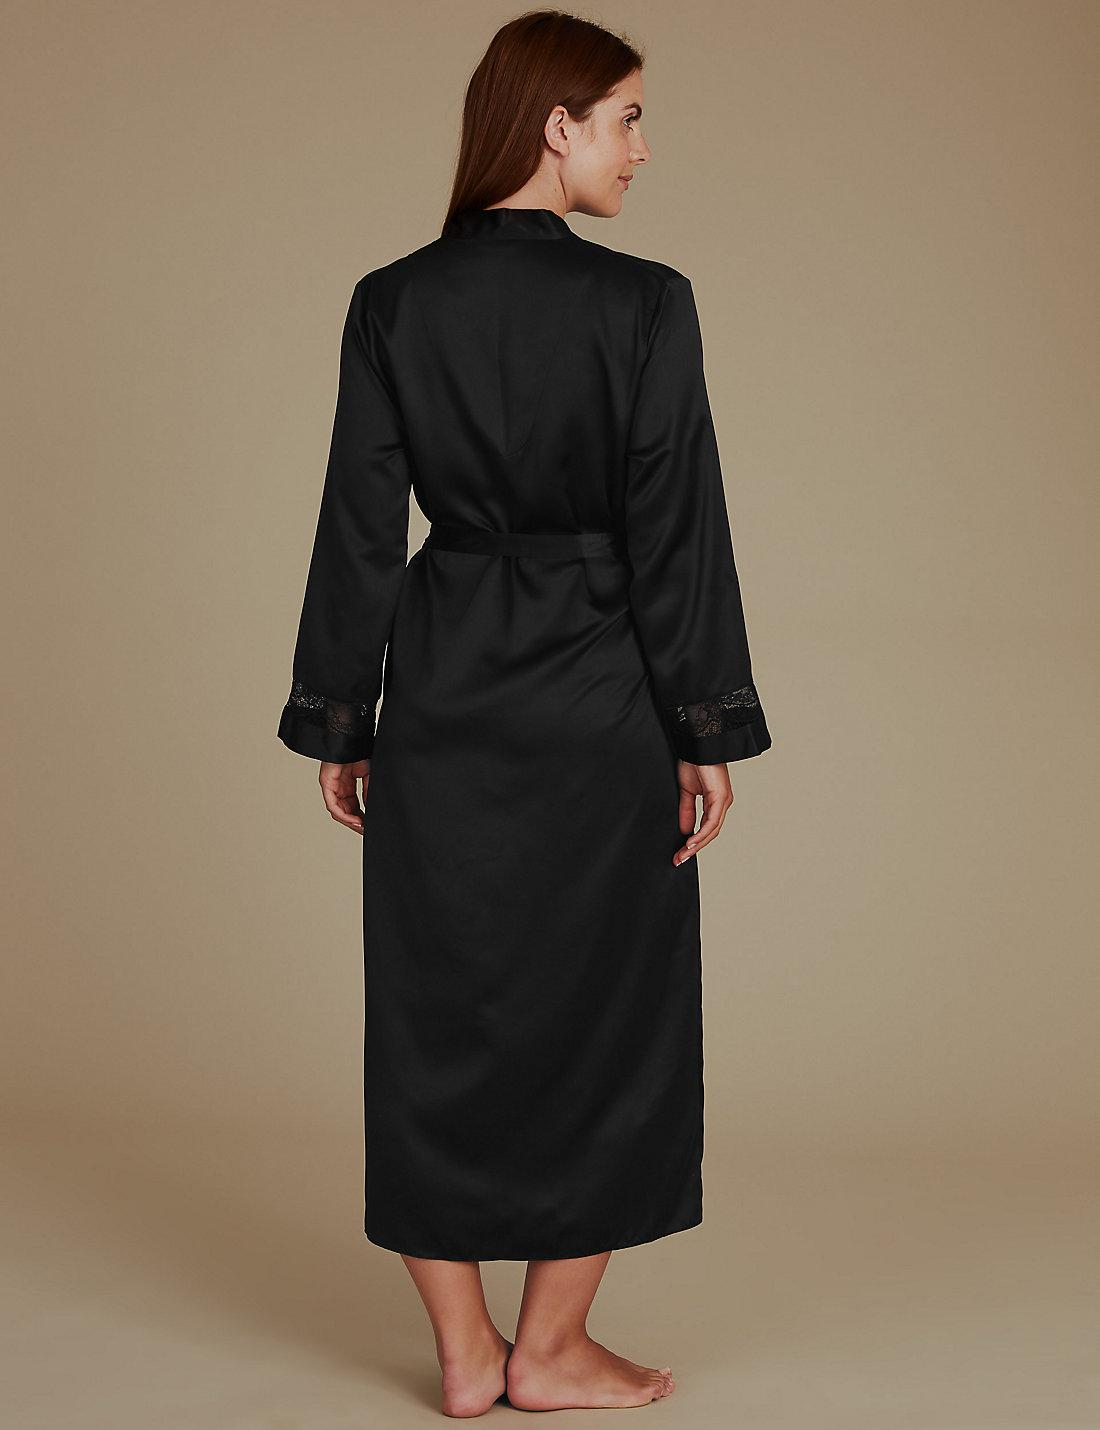 Lyst - Marks & Spencer Long Satin Wrap Dressing Gown With Belt in Black